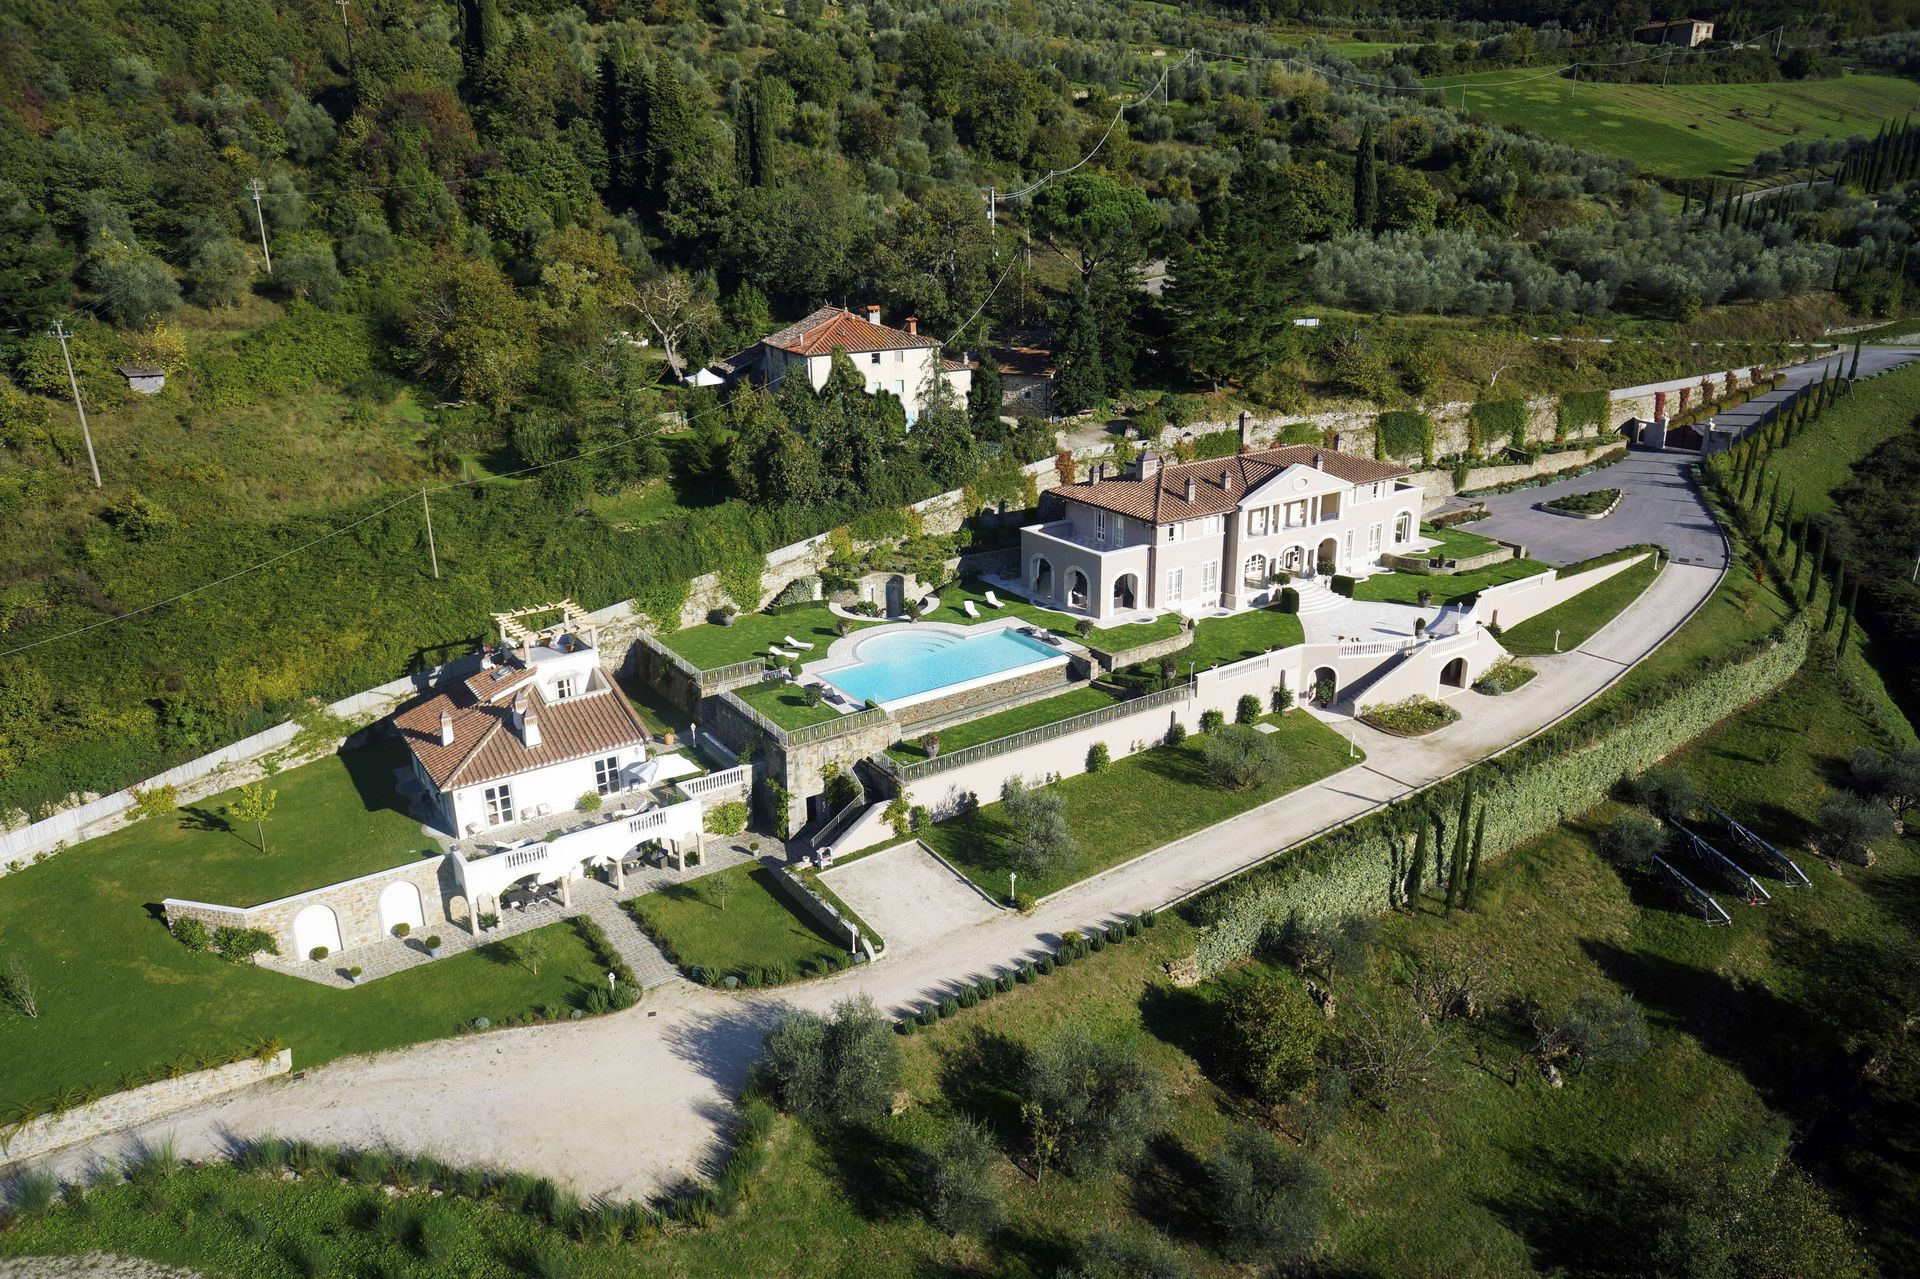 caiano villa vacation rental villa caiano that sleeps 10 people in